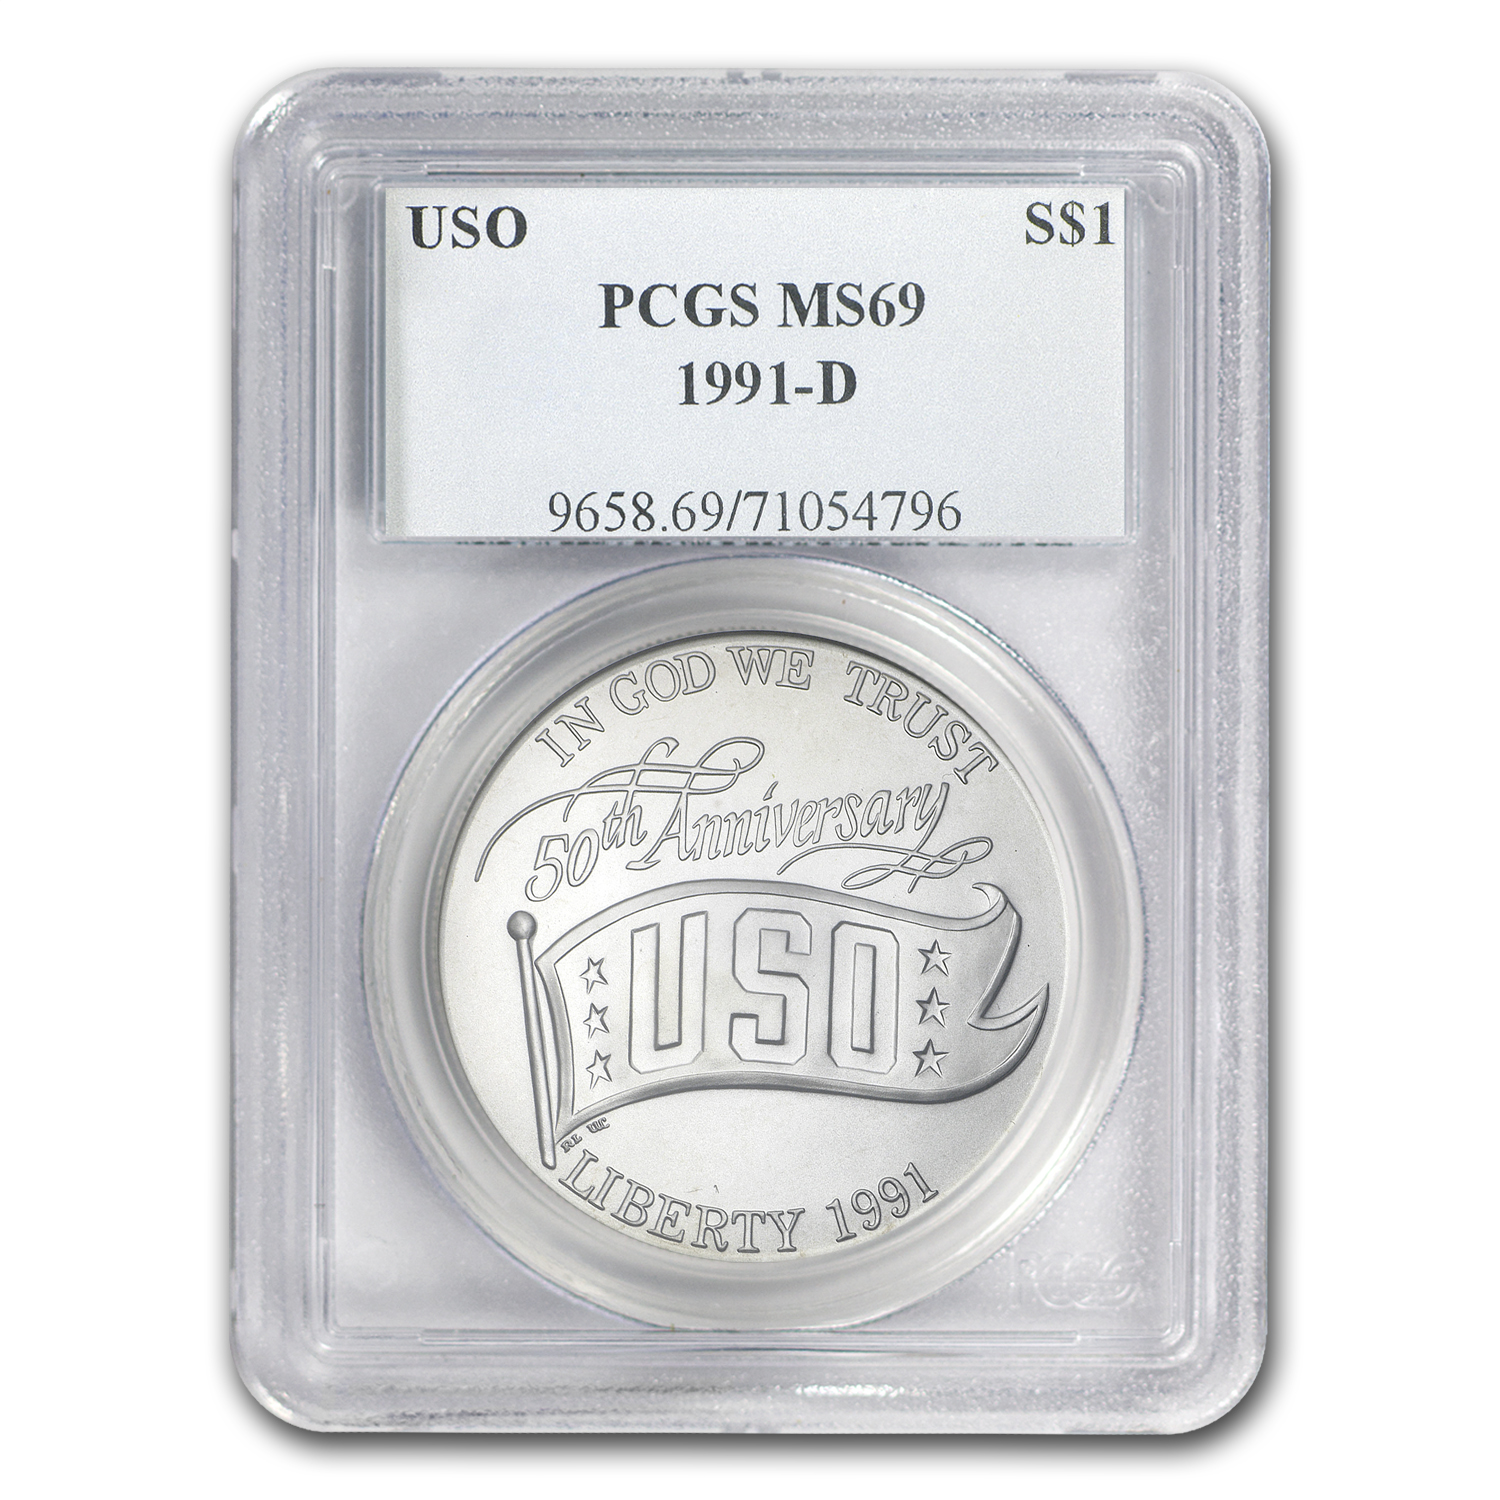 1991-D USO $1 Silver Commemorative - MS-69 PCGS